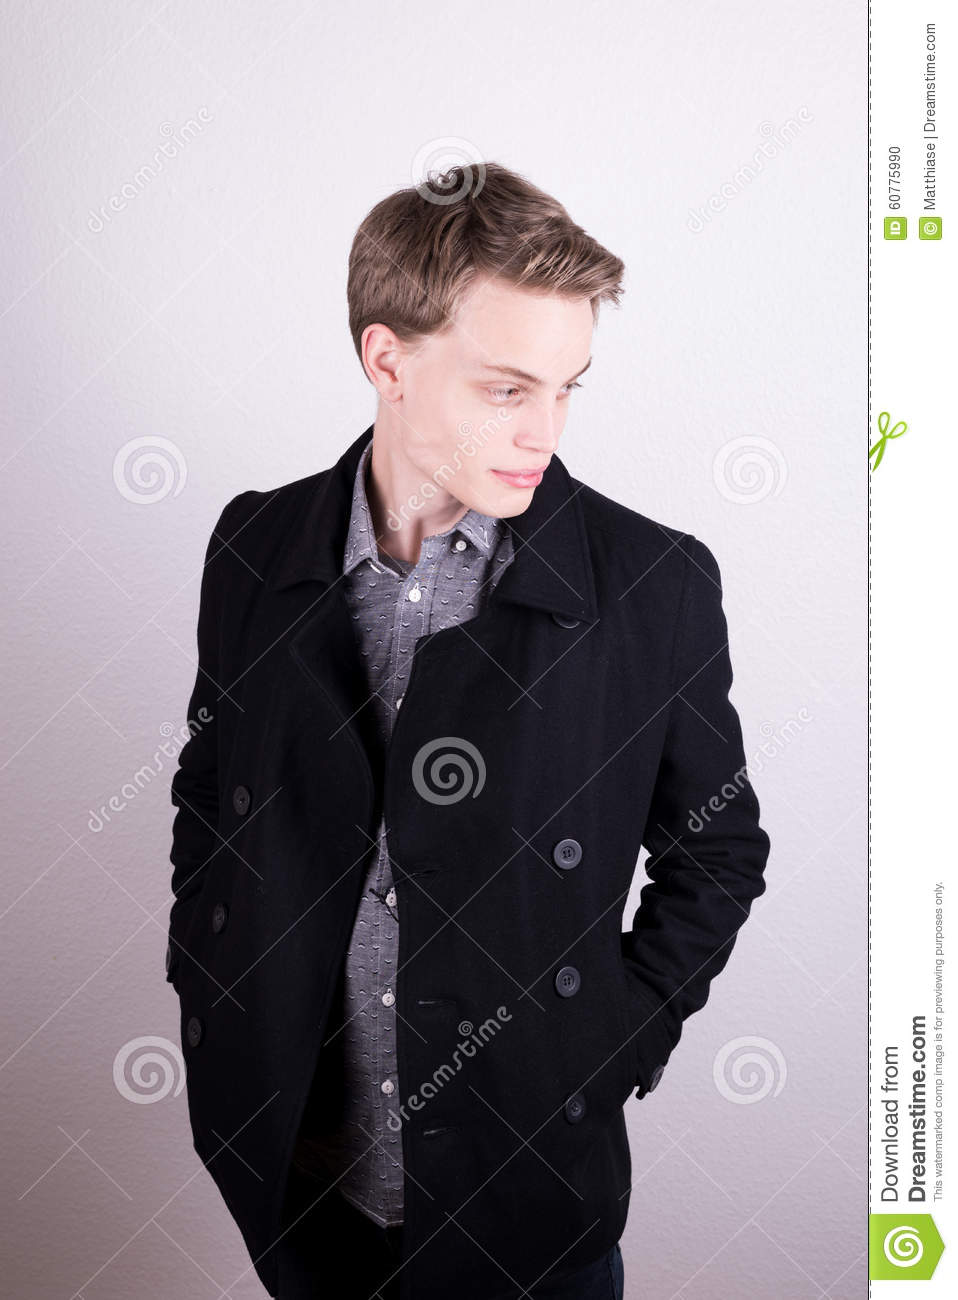 Male clothes model